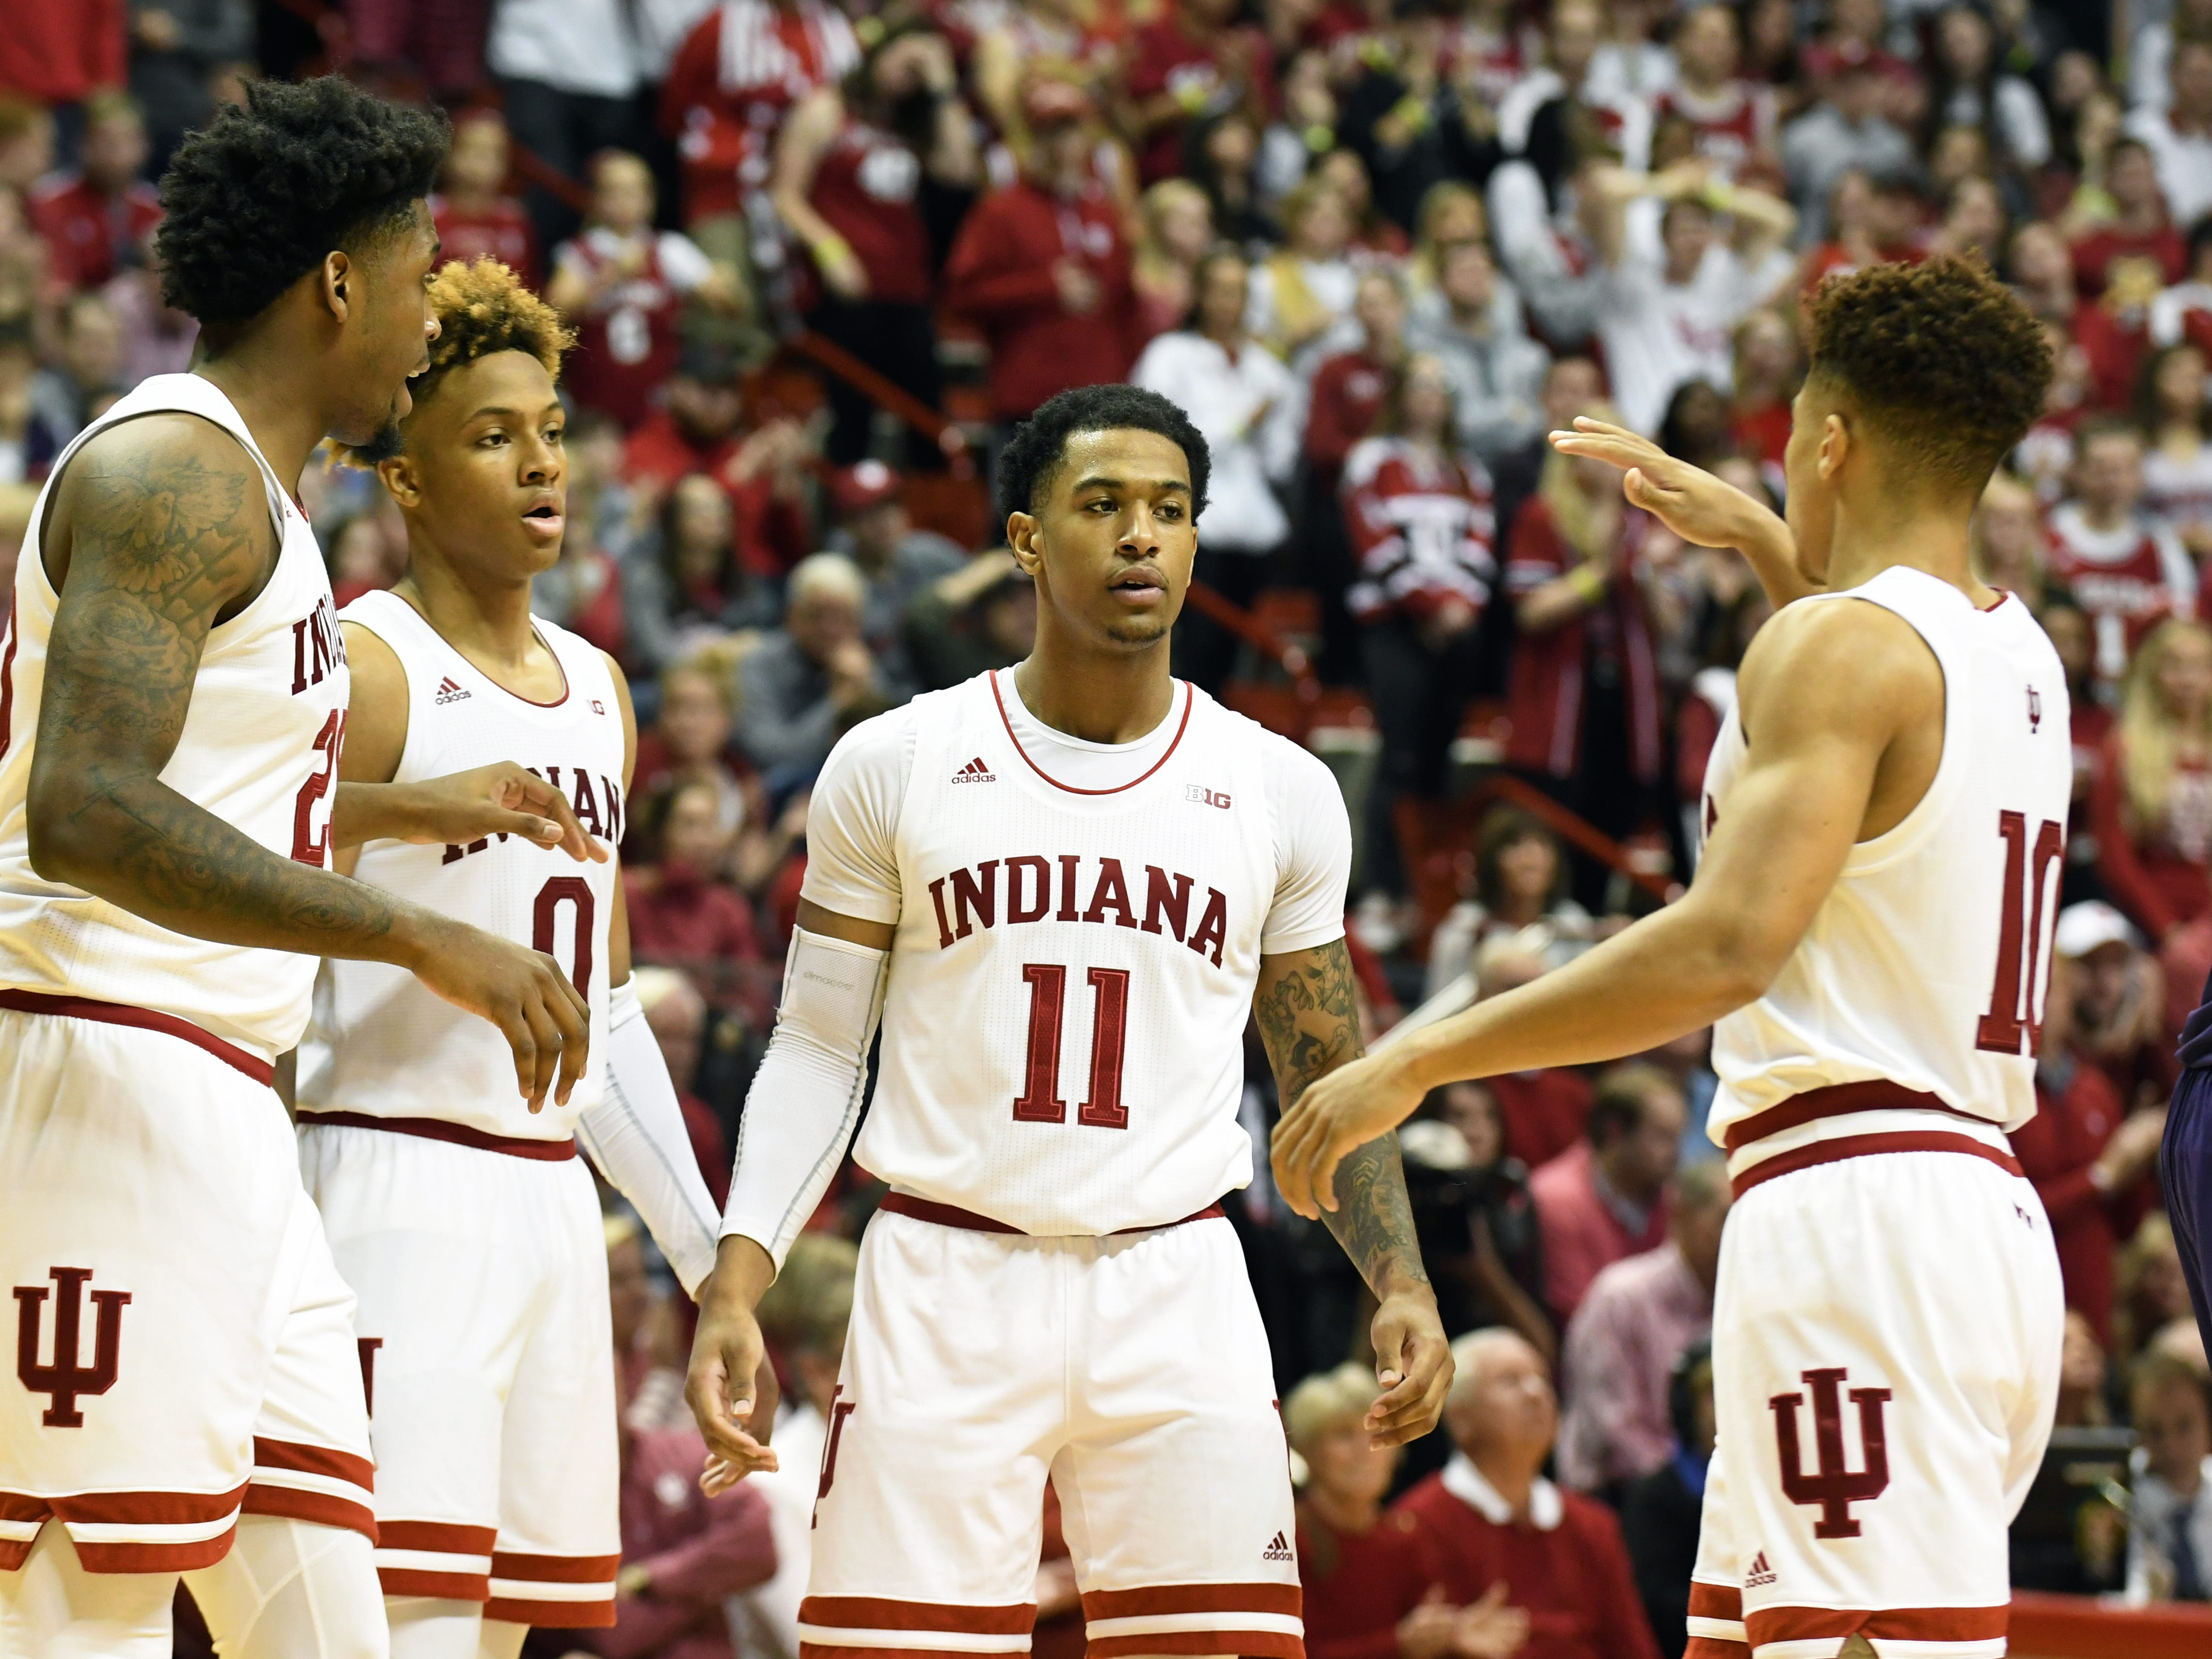 The Indiana Hoosiers celebrate after a play during the game against Northwestern at Simon Skjodt Assembly Hall in Bloomington, Ind., on Saturday, Dec. 1, 2018.